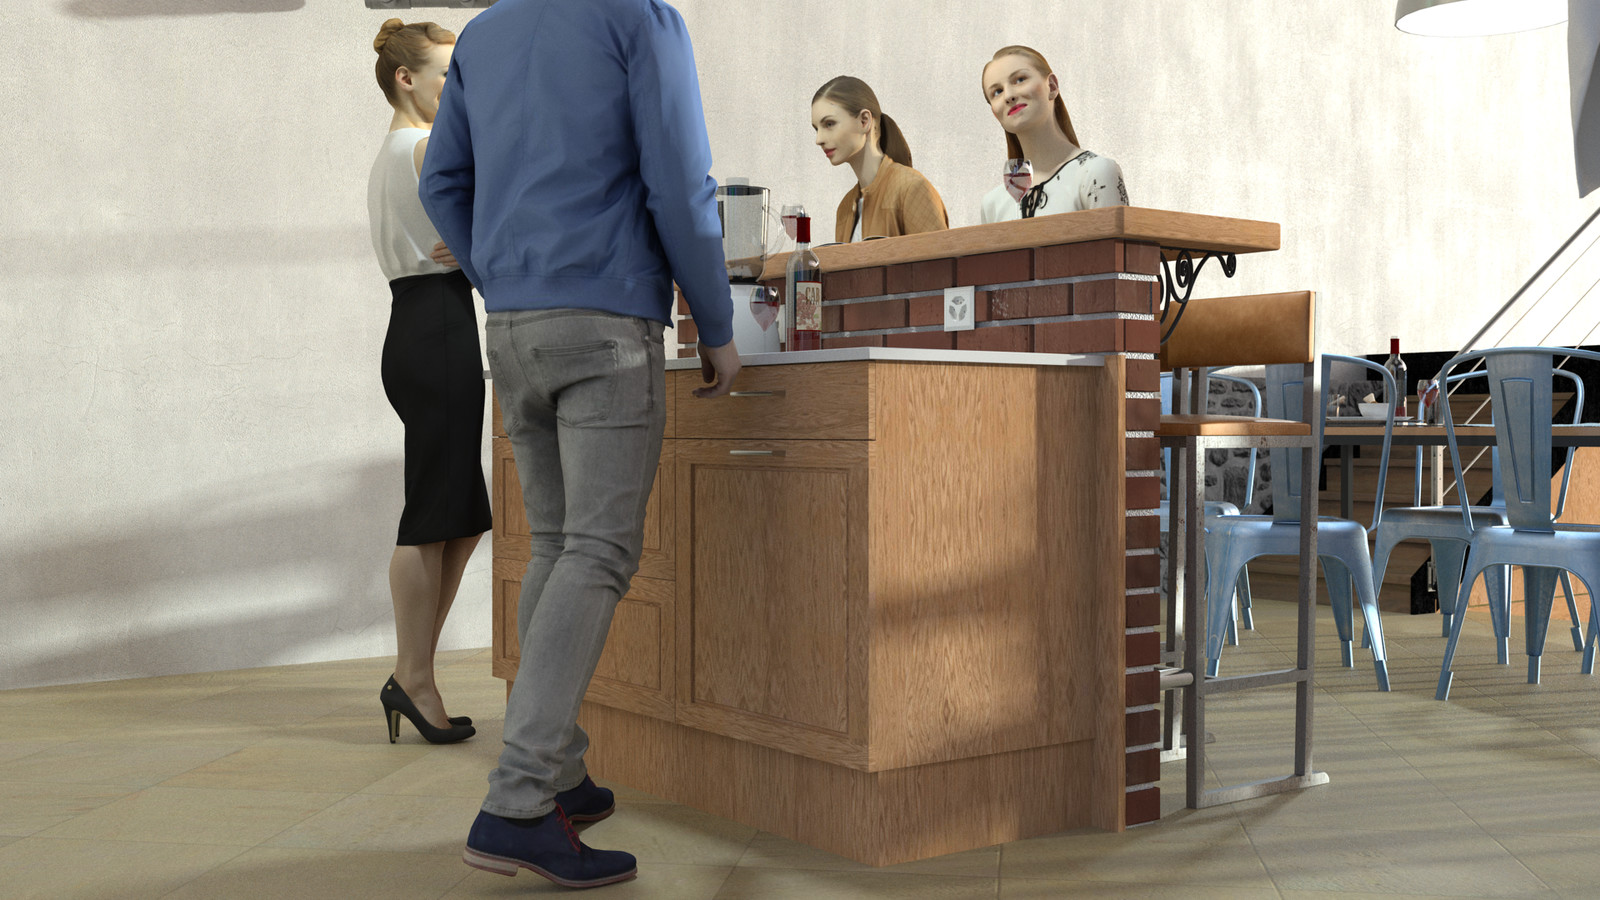 SketchUp + Thea Render  Rivendell Mill's Kitchen Bar Rivendell Brick Bar 2017-Scene 010  The 3d people are from AXYZ design collections found here: Collection 30 : http://bit.ly/2kS8pHx Collection 31 : http://bit.ly/2lJSkFu